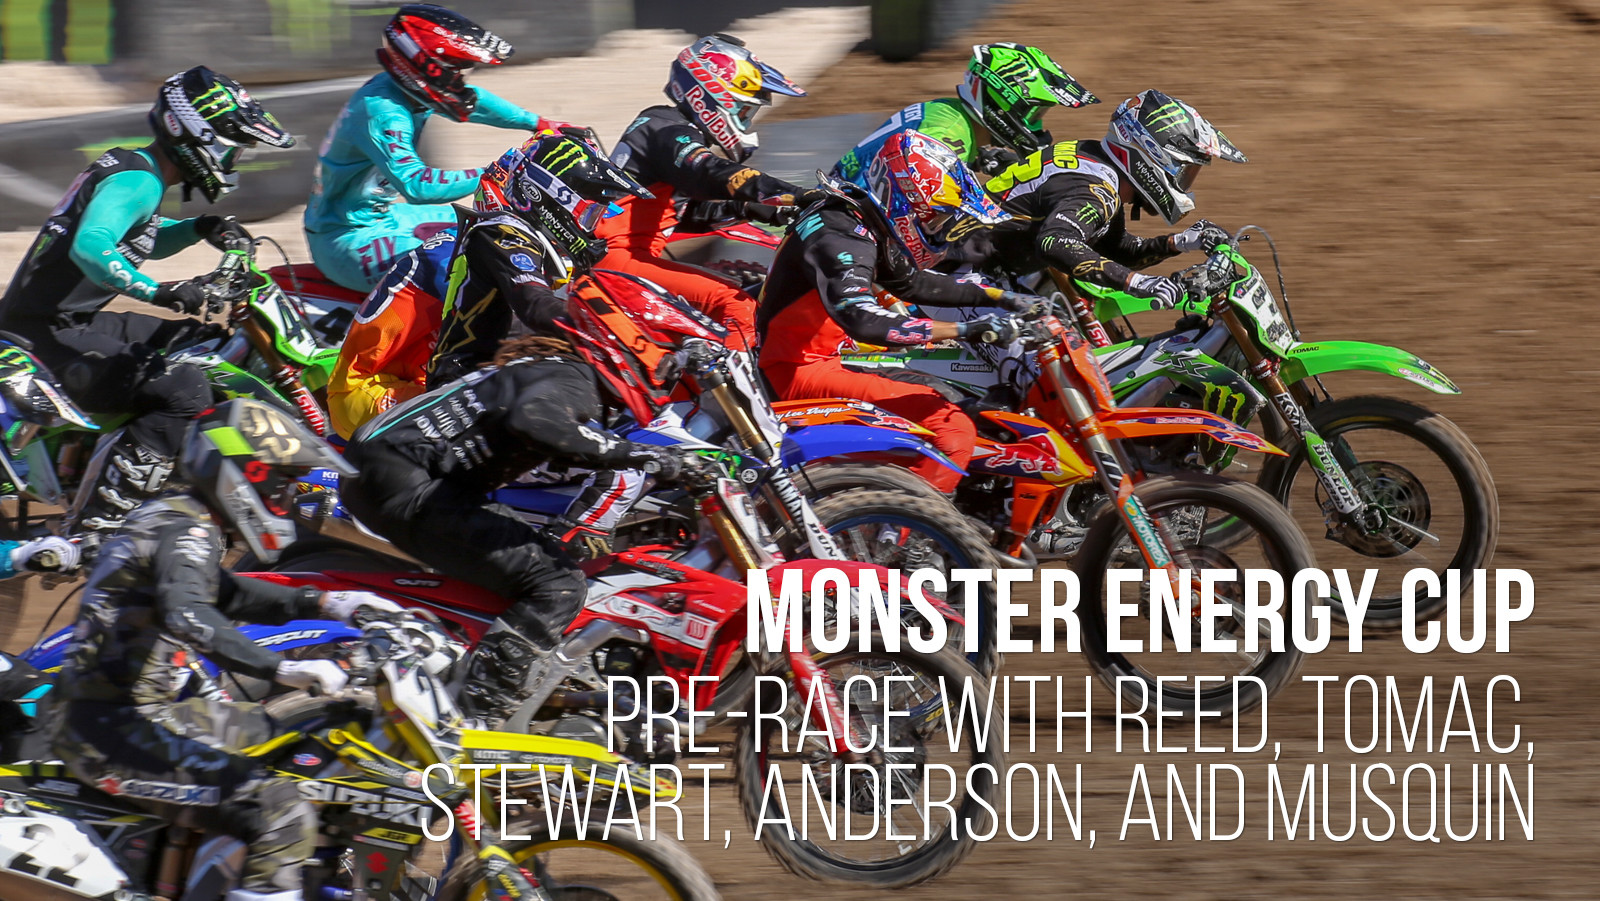 2018 Monster Energy Cup Pre-Race with Reed, Tomac, Stewart, Anderson, and Musquin